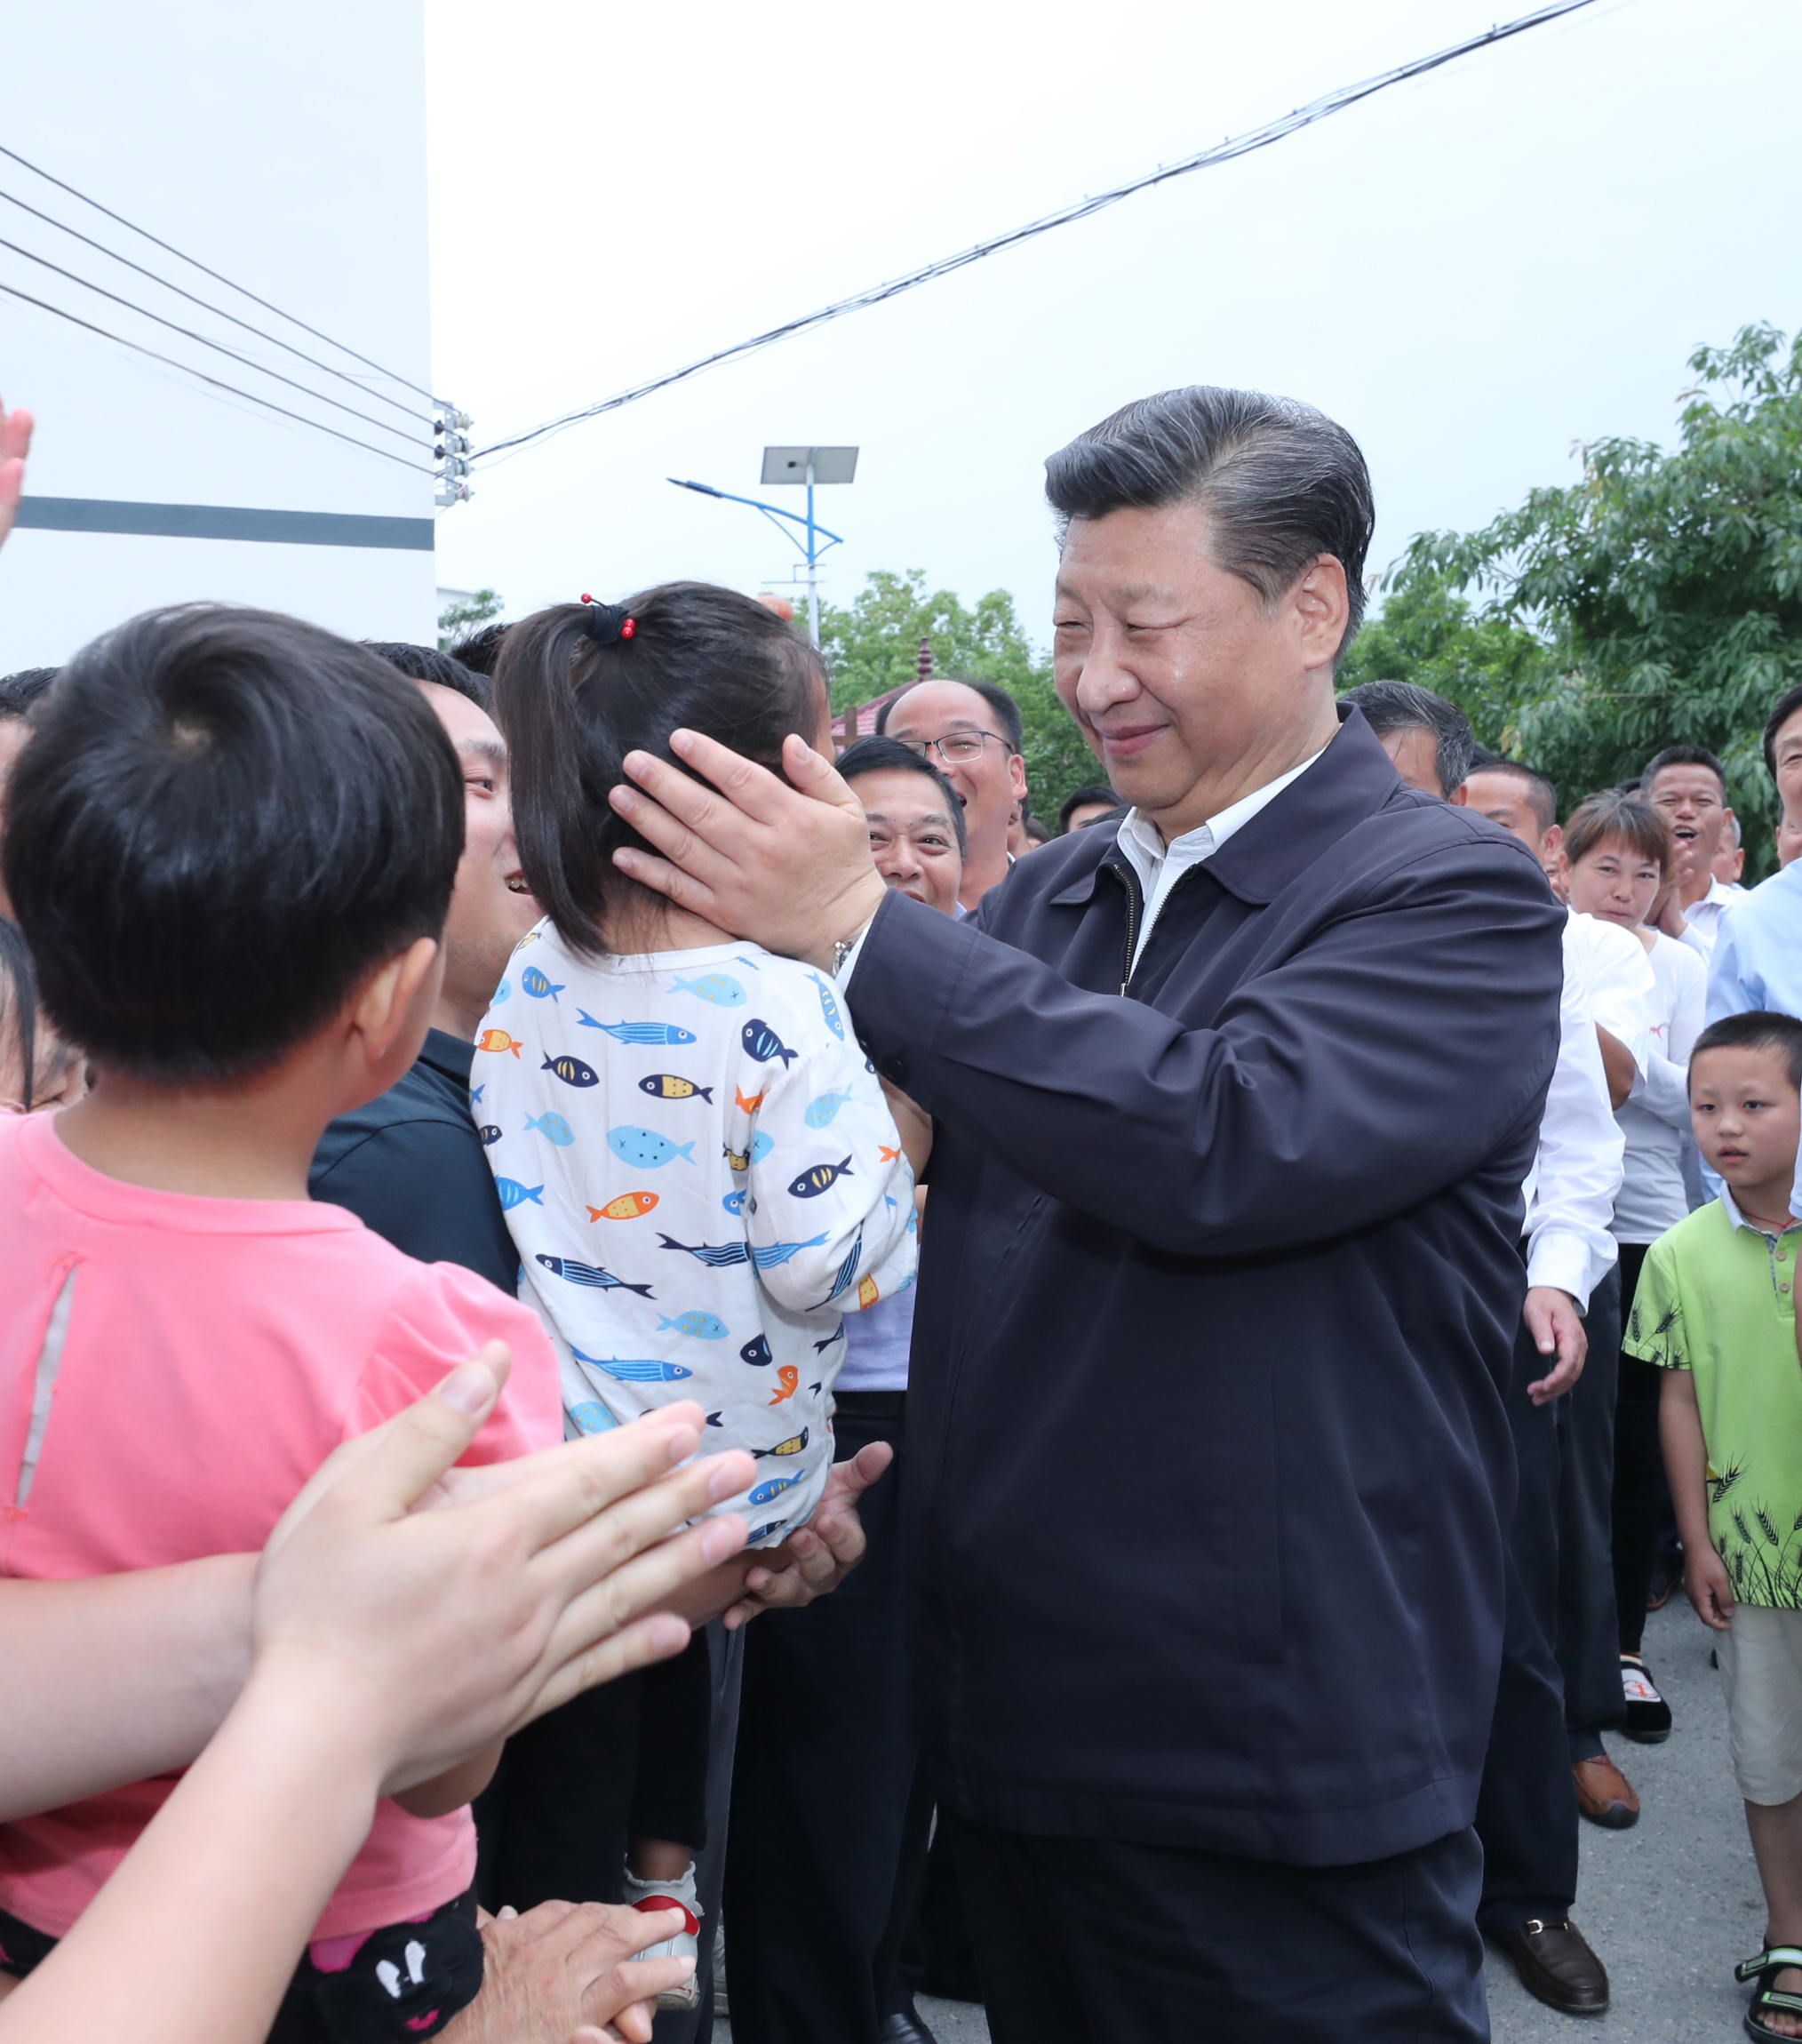 Xinhua Headlines: Xi Jinping: a leader who interacts with children - Xinhua | English.news.cn